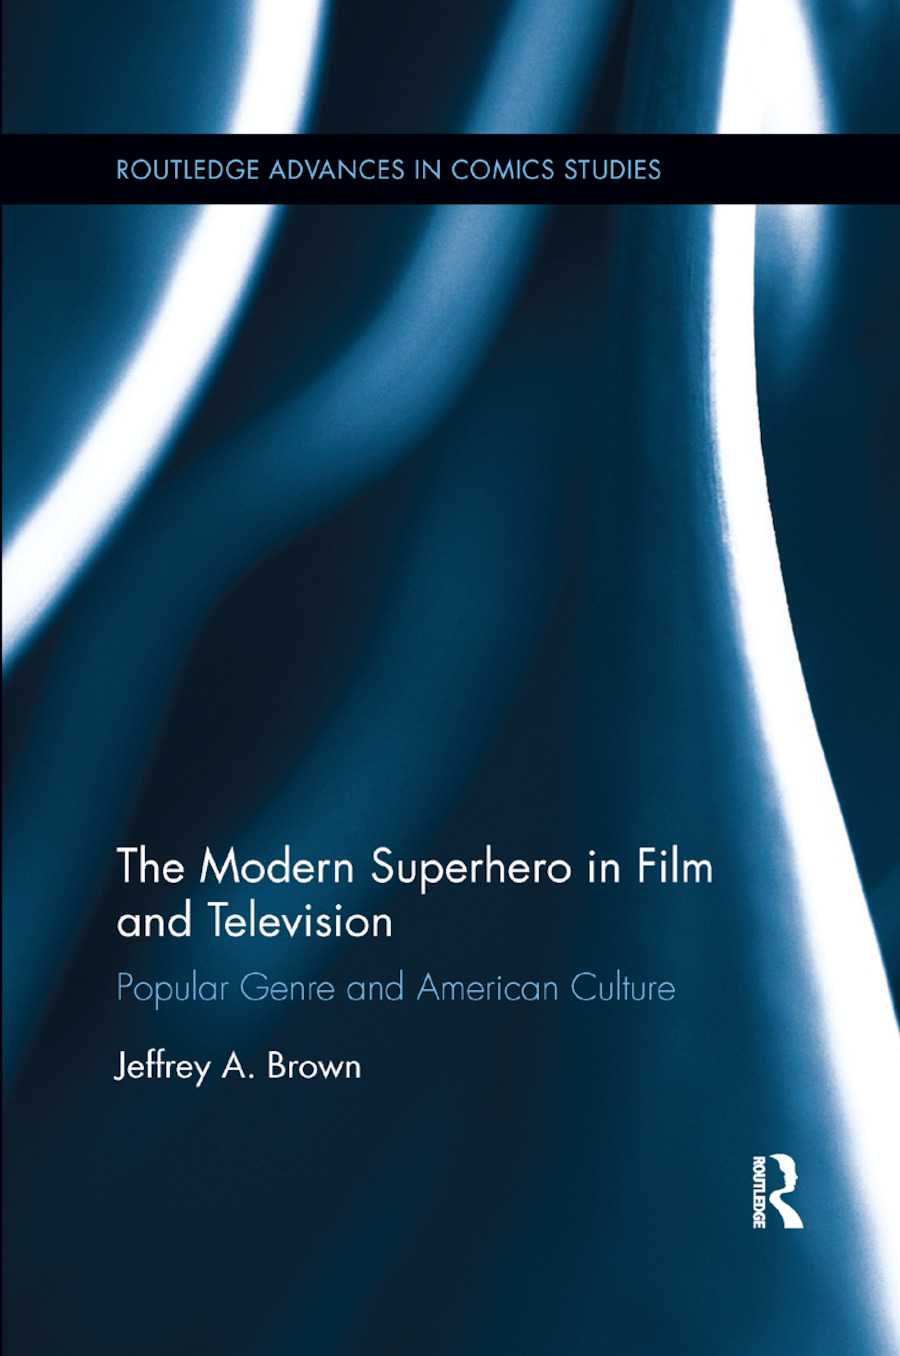 The Modern Superhero in Film and Television: Popular Genre and American Culture book cover